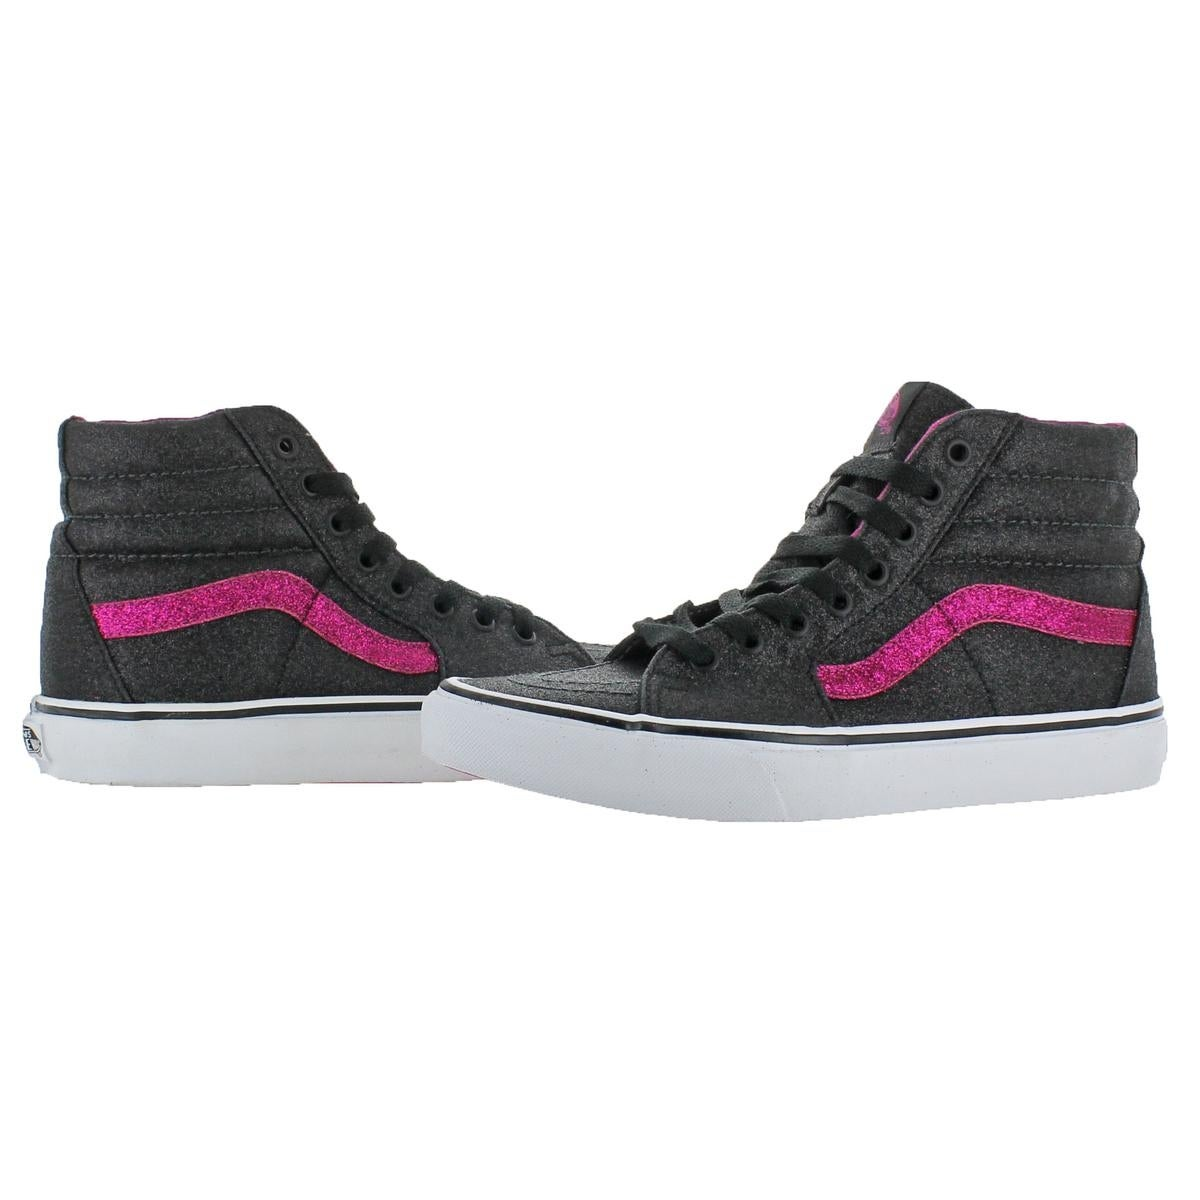 892e2c2f2f Shop Vans Womens Sk8-Hi Skate Shoes High Top Fashion - Free Shipping On  Orders Over  45 - Overstock - 22866742